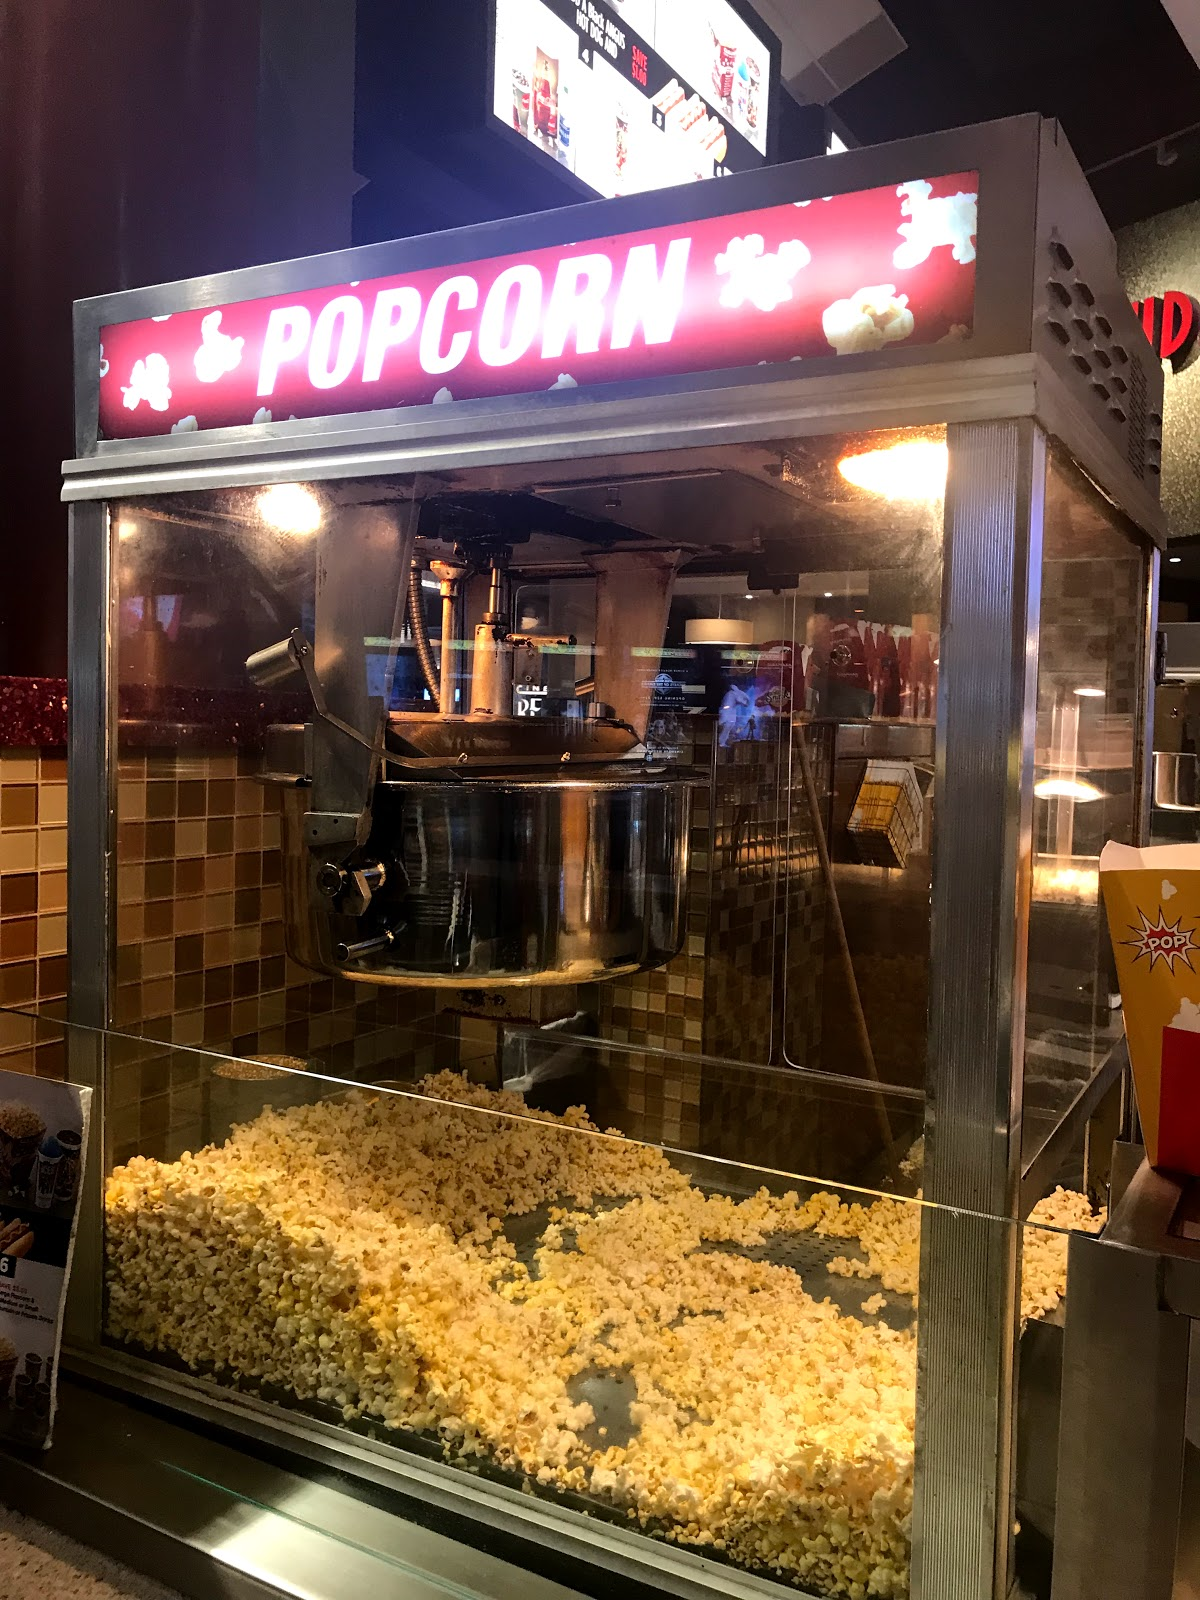 Image Popcorn machine at movie theater: Family enjoys watching new goosebumps movies for halloween also adds their own review by tangie bell weekend bits and favorites